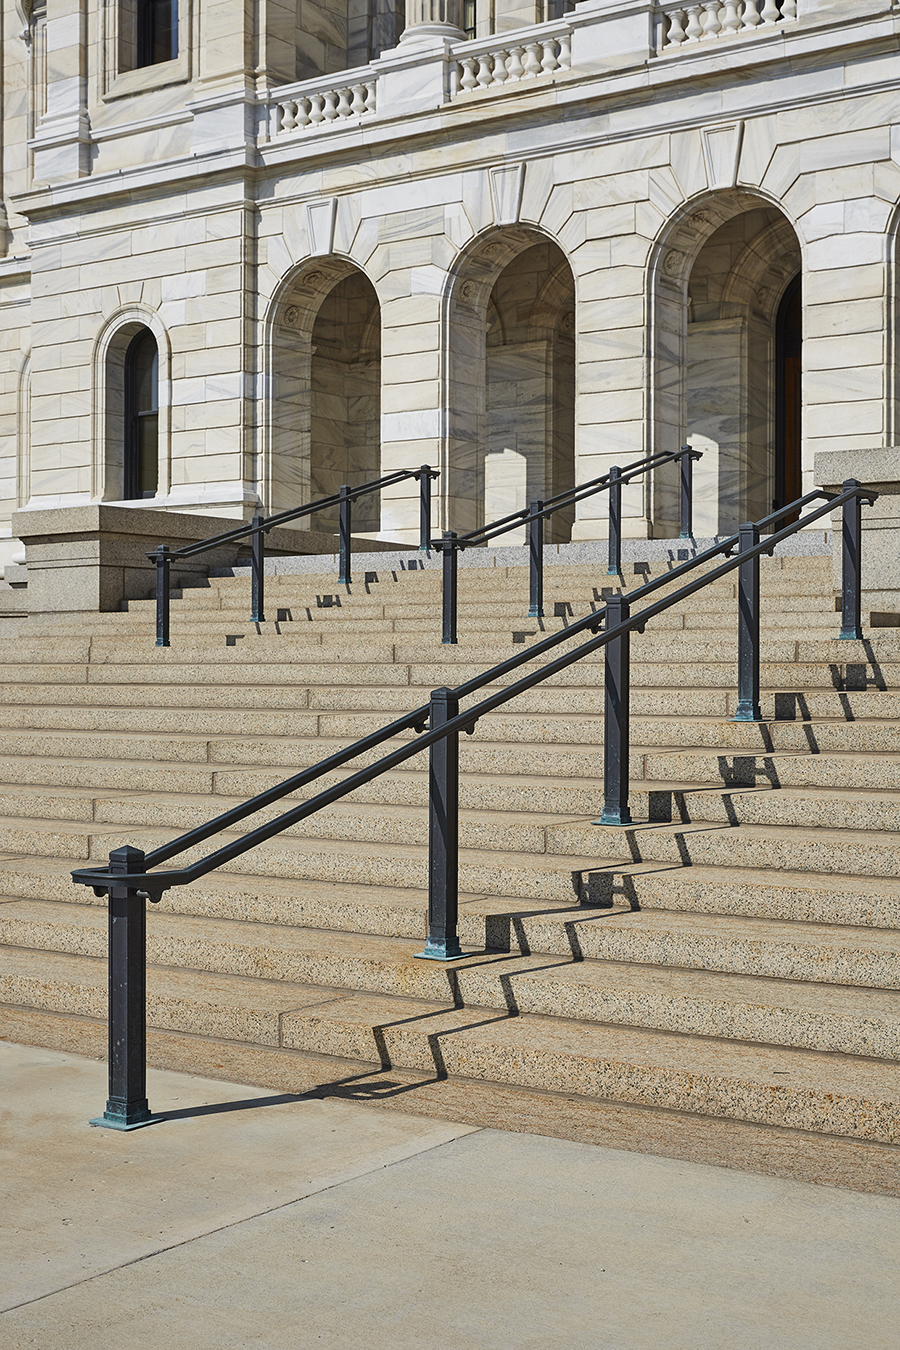 Bauer Metal Minnesota State Capitol Wrought Iron On-Site Welding Historic Preservation Restoriation Architectural Fabrication Minnesota Twin Cities Metalwork Luxury Railings Stairs Wrought Iron Fabricator Welding Twin Cities MN3.jpg